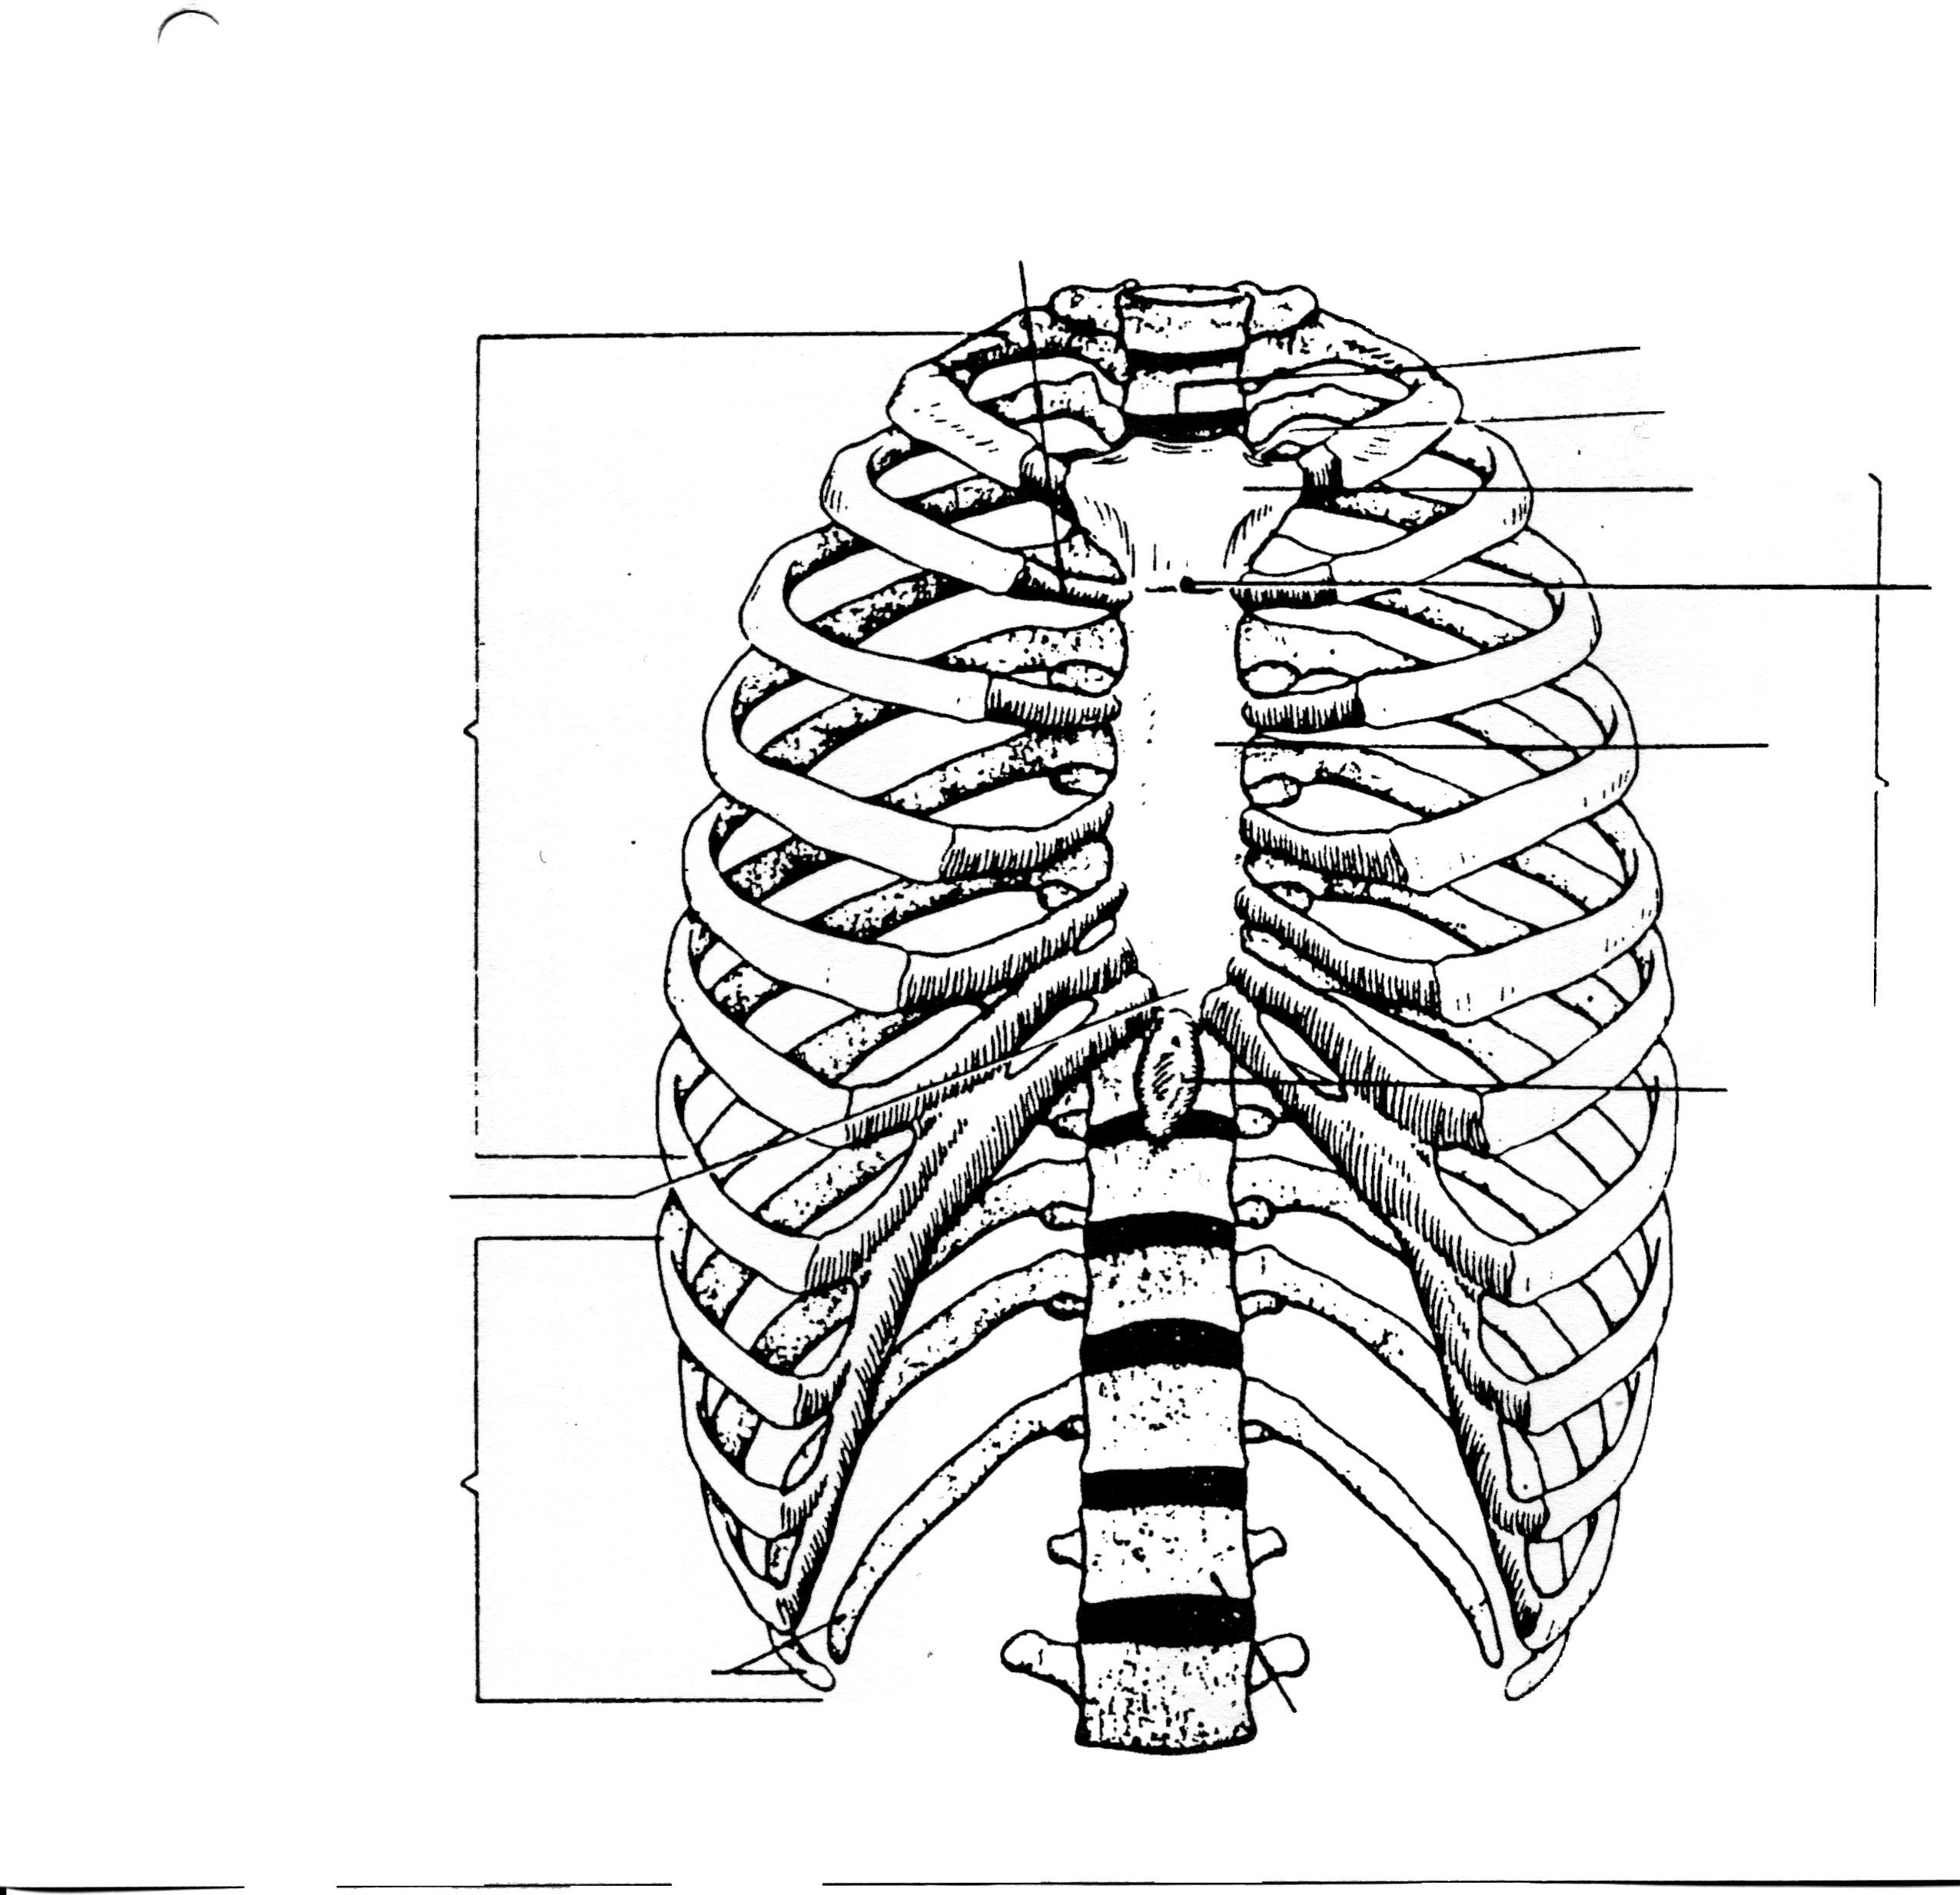 Human Rib Cage Drawing At Getdrawings Free For Personal Use